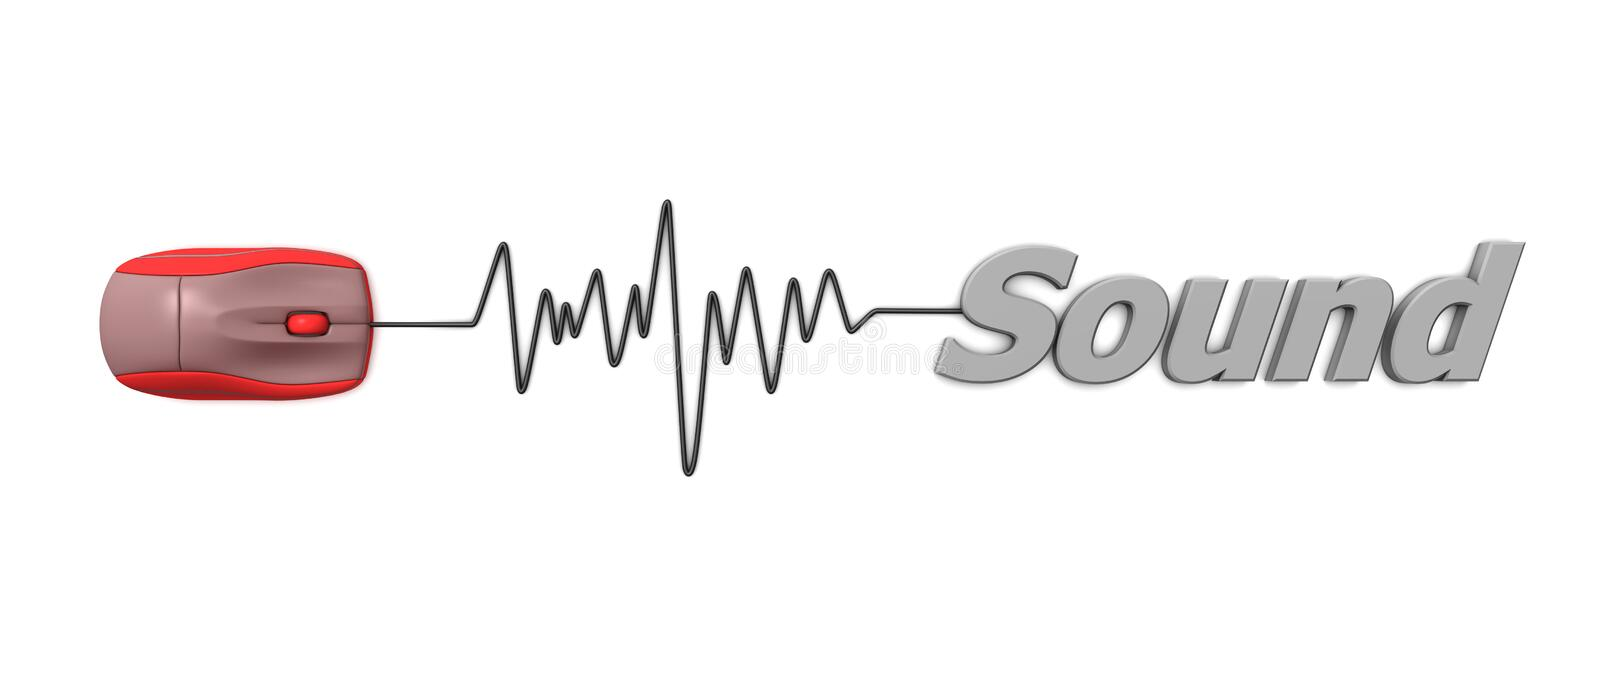 Word Sound with Red Mouse. Red computer mouse connected to the grey word Sound via sine waveform cable royalty free illustration